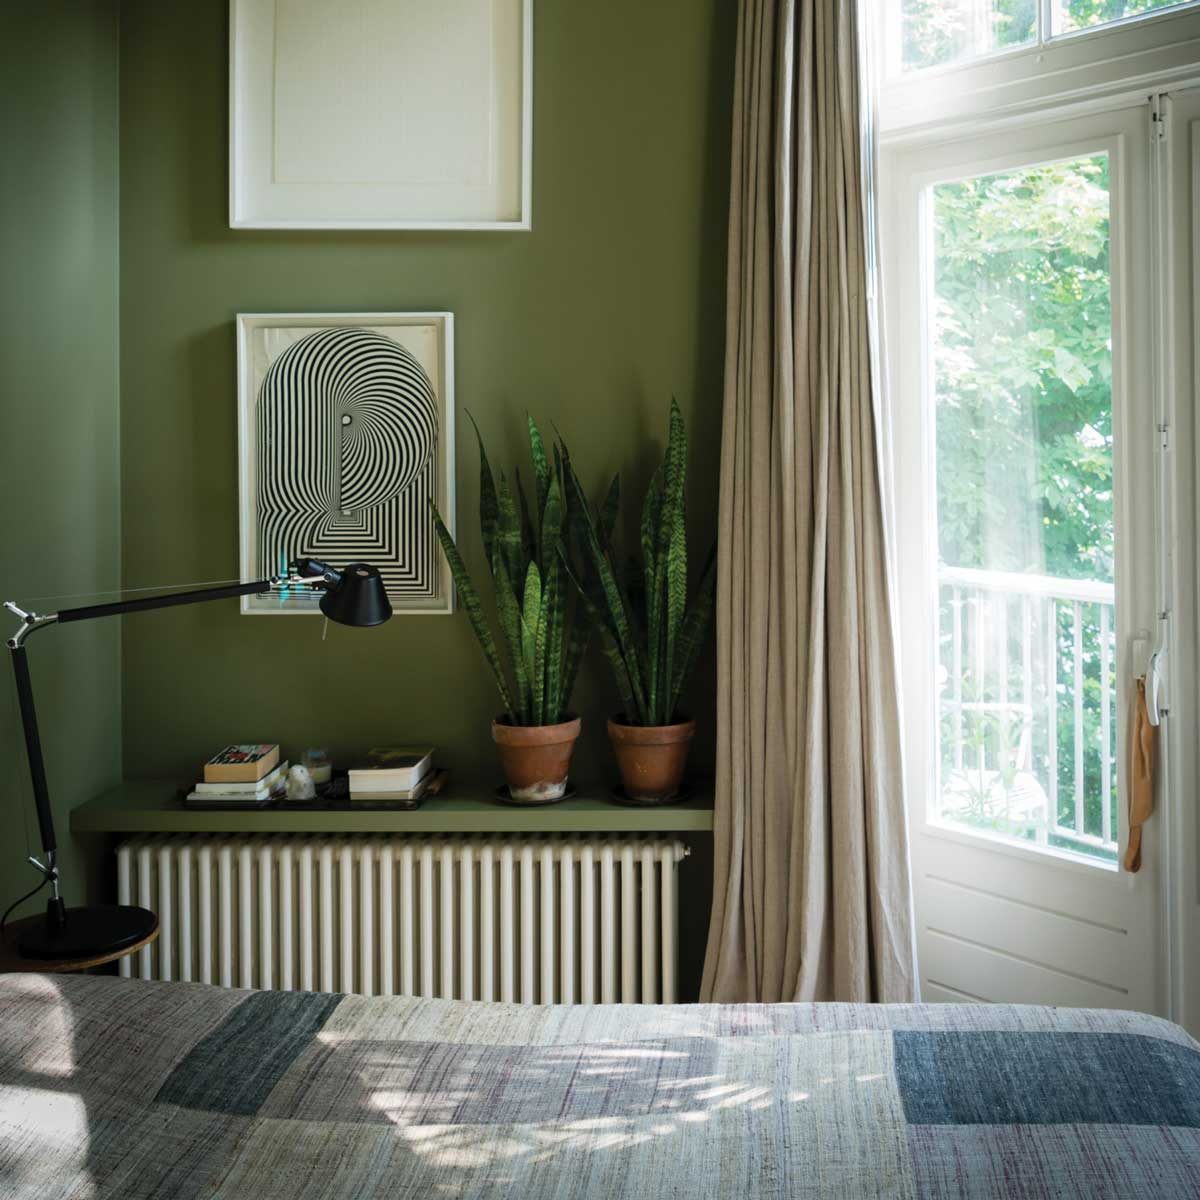 Bedroom with green walls and natural materials